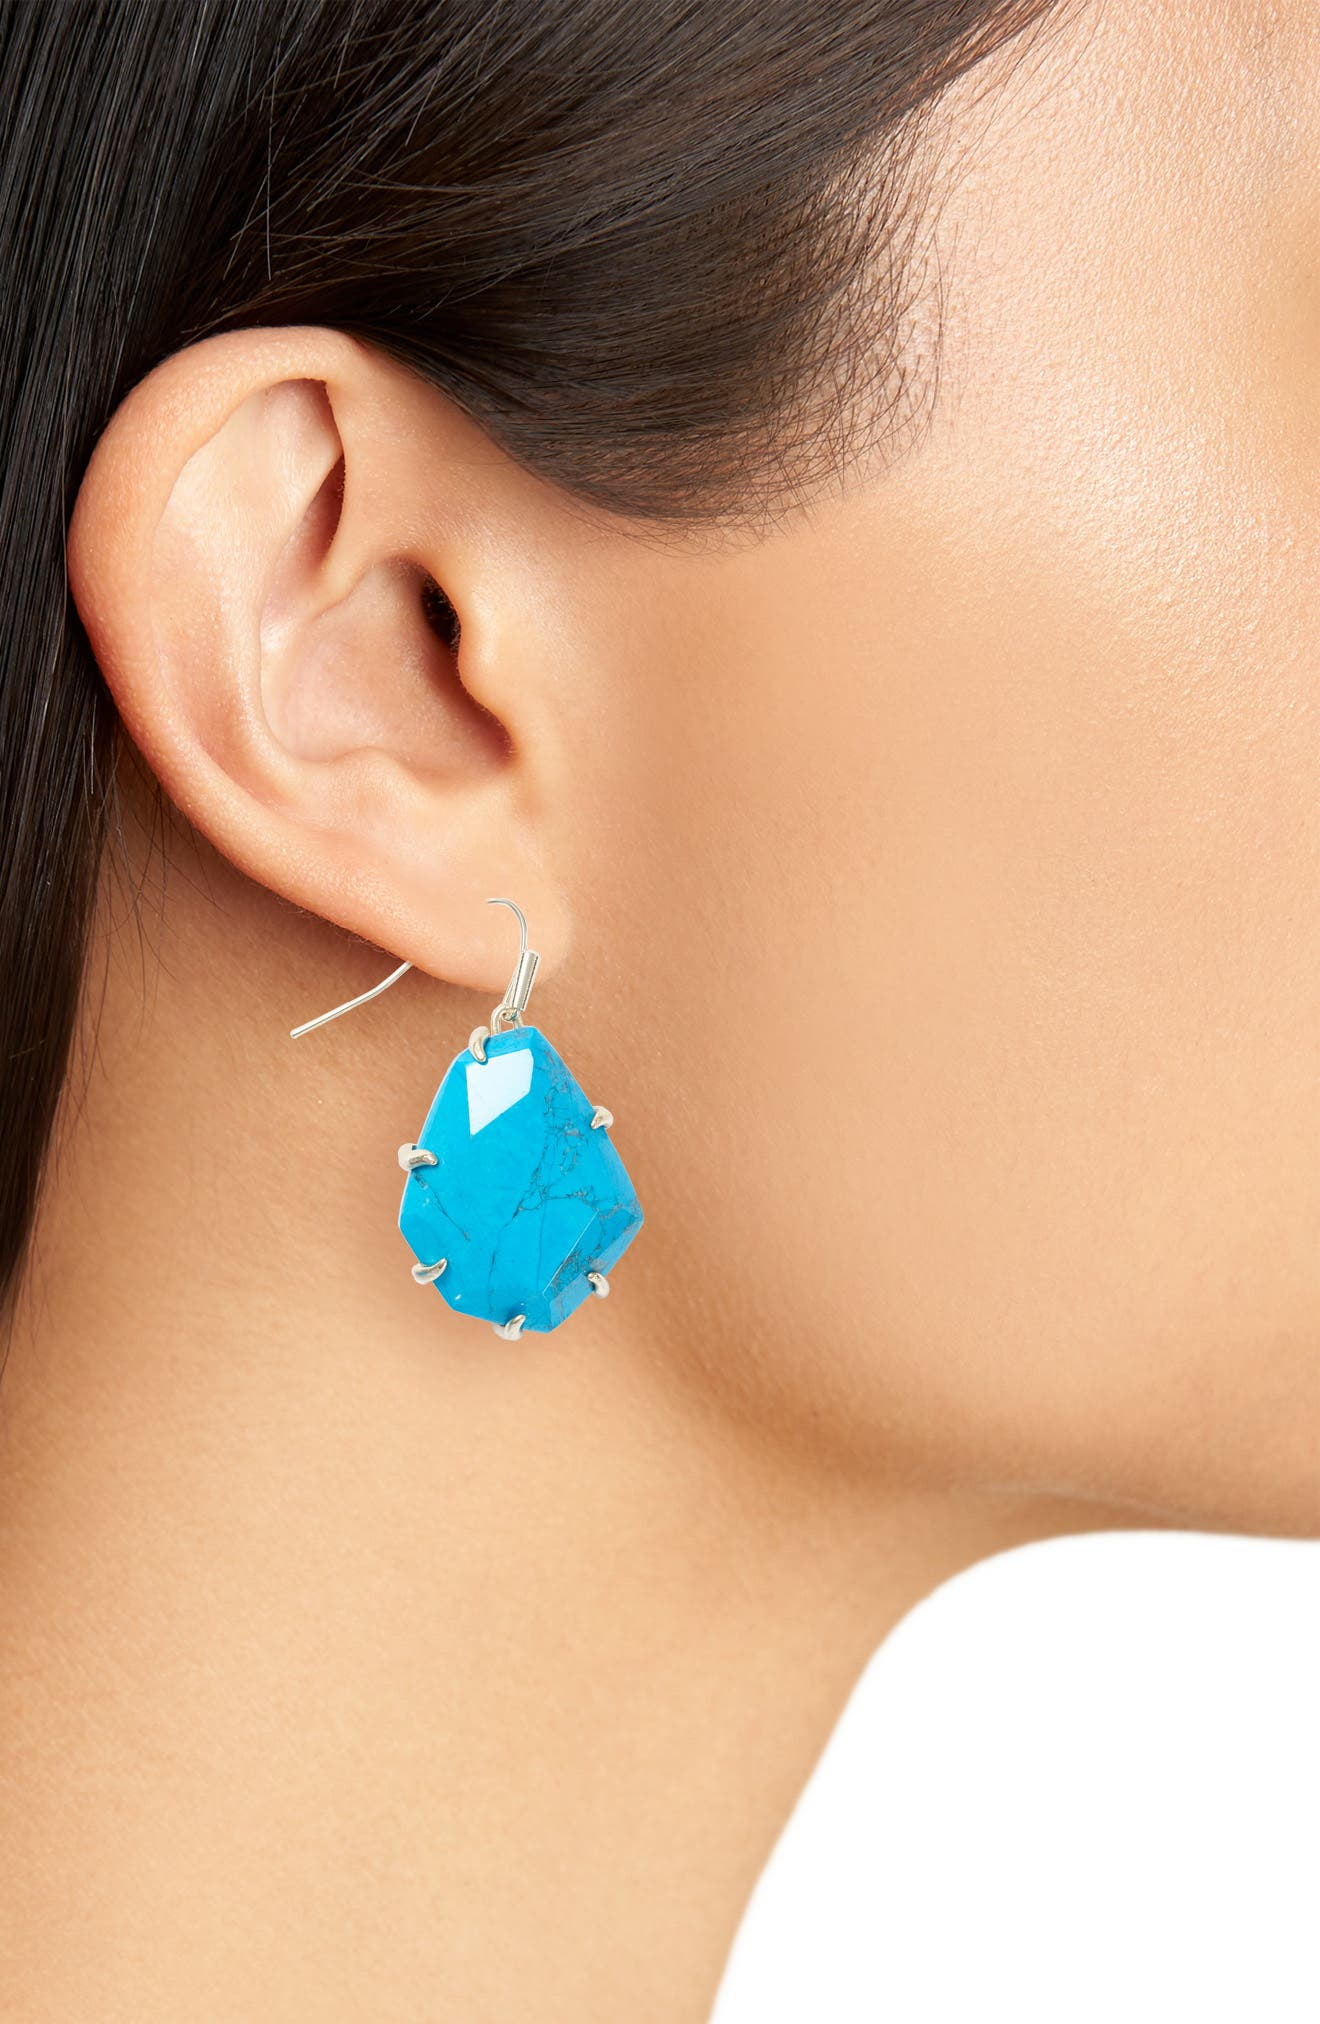 Rosenell Stone Earrings,                             Alternate thumbnail 2, color,                             Aqua Howlite/ Gold